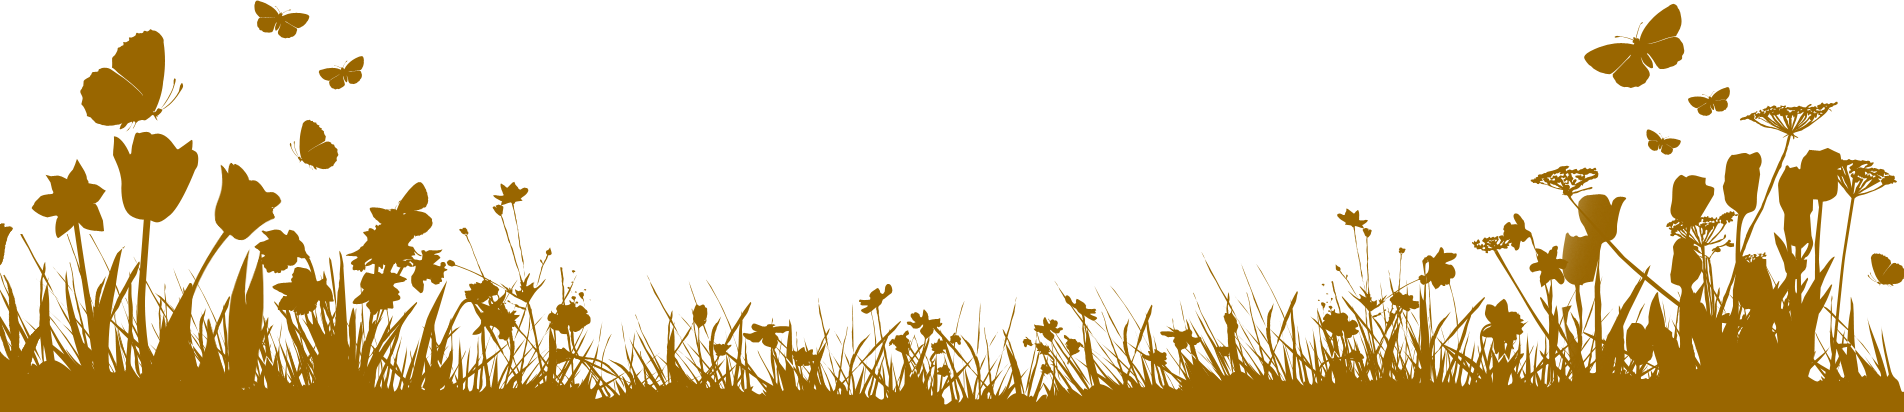 Wild Flower Border Gold - Edging PNG